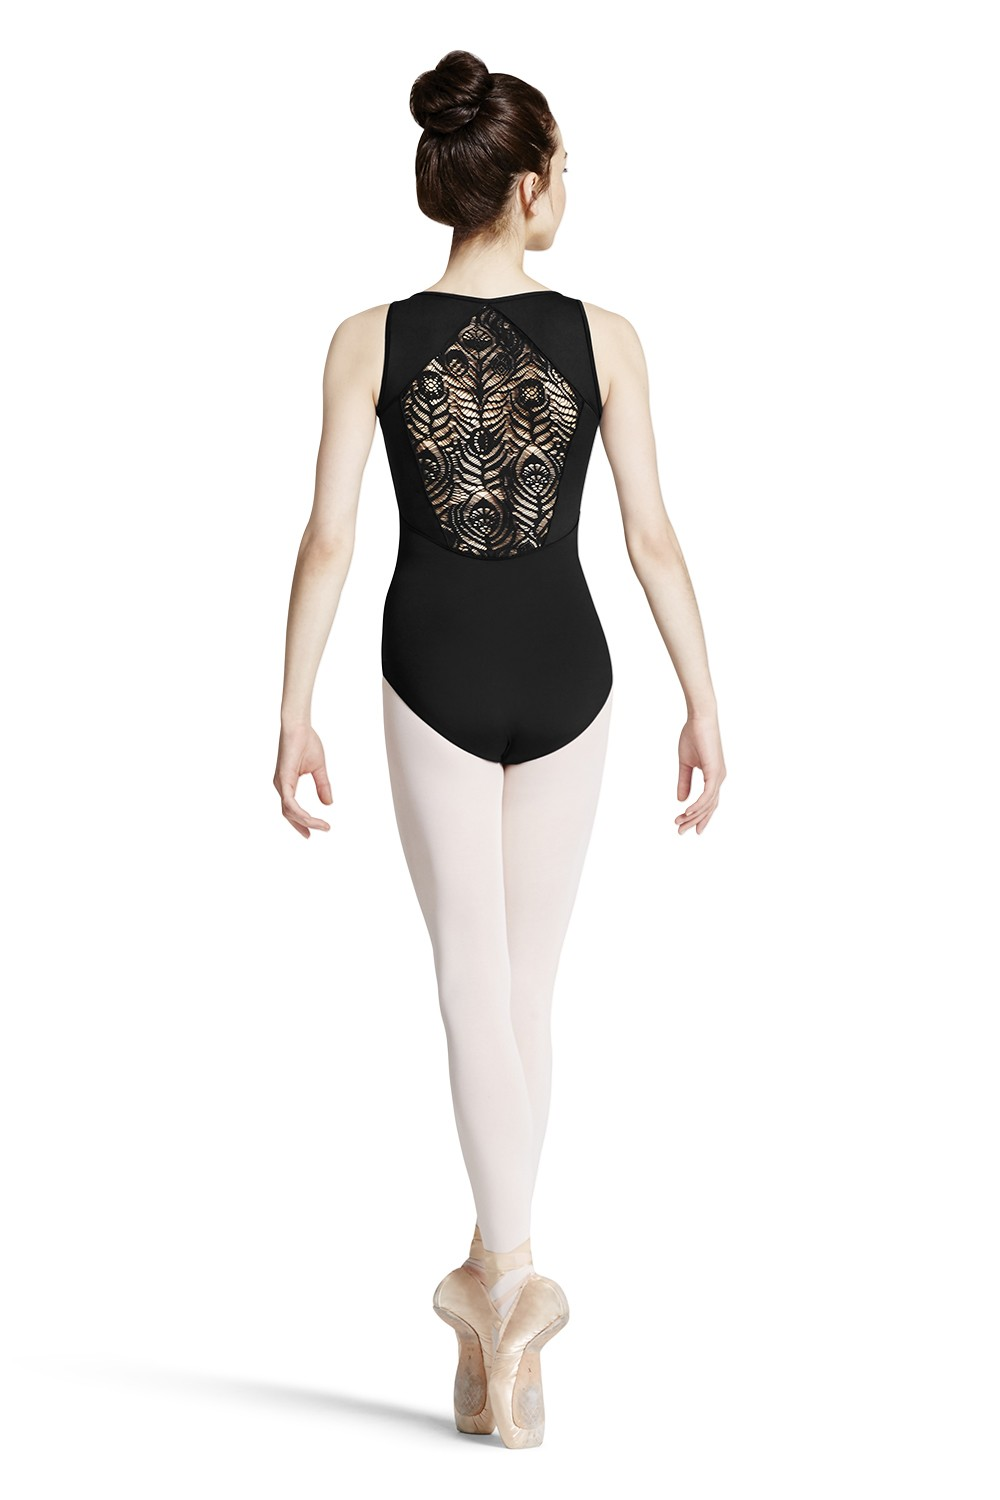 Peacock Plume Diamond Back Tank Leotard Women's Dance Leotards